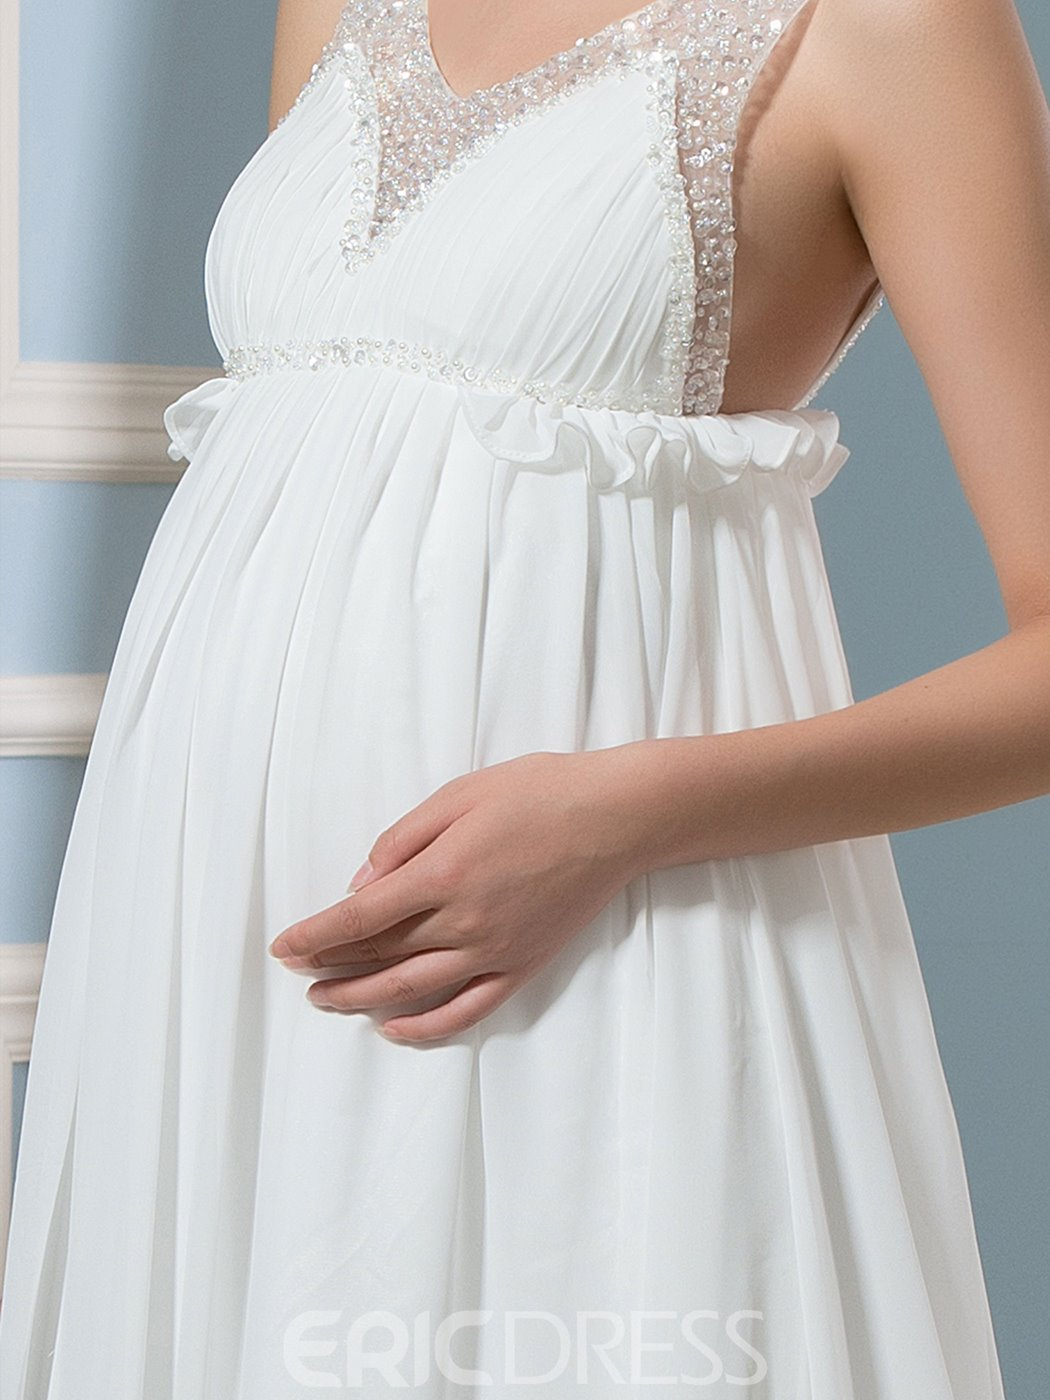 Ericdress Charming Beading A Line Maternity Wedding Dress